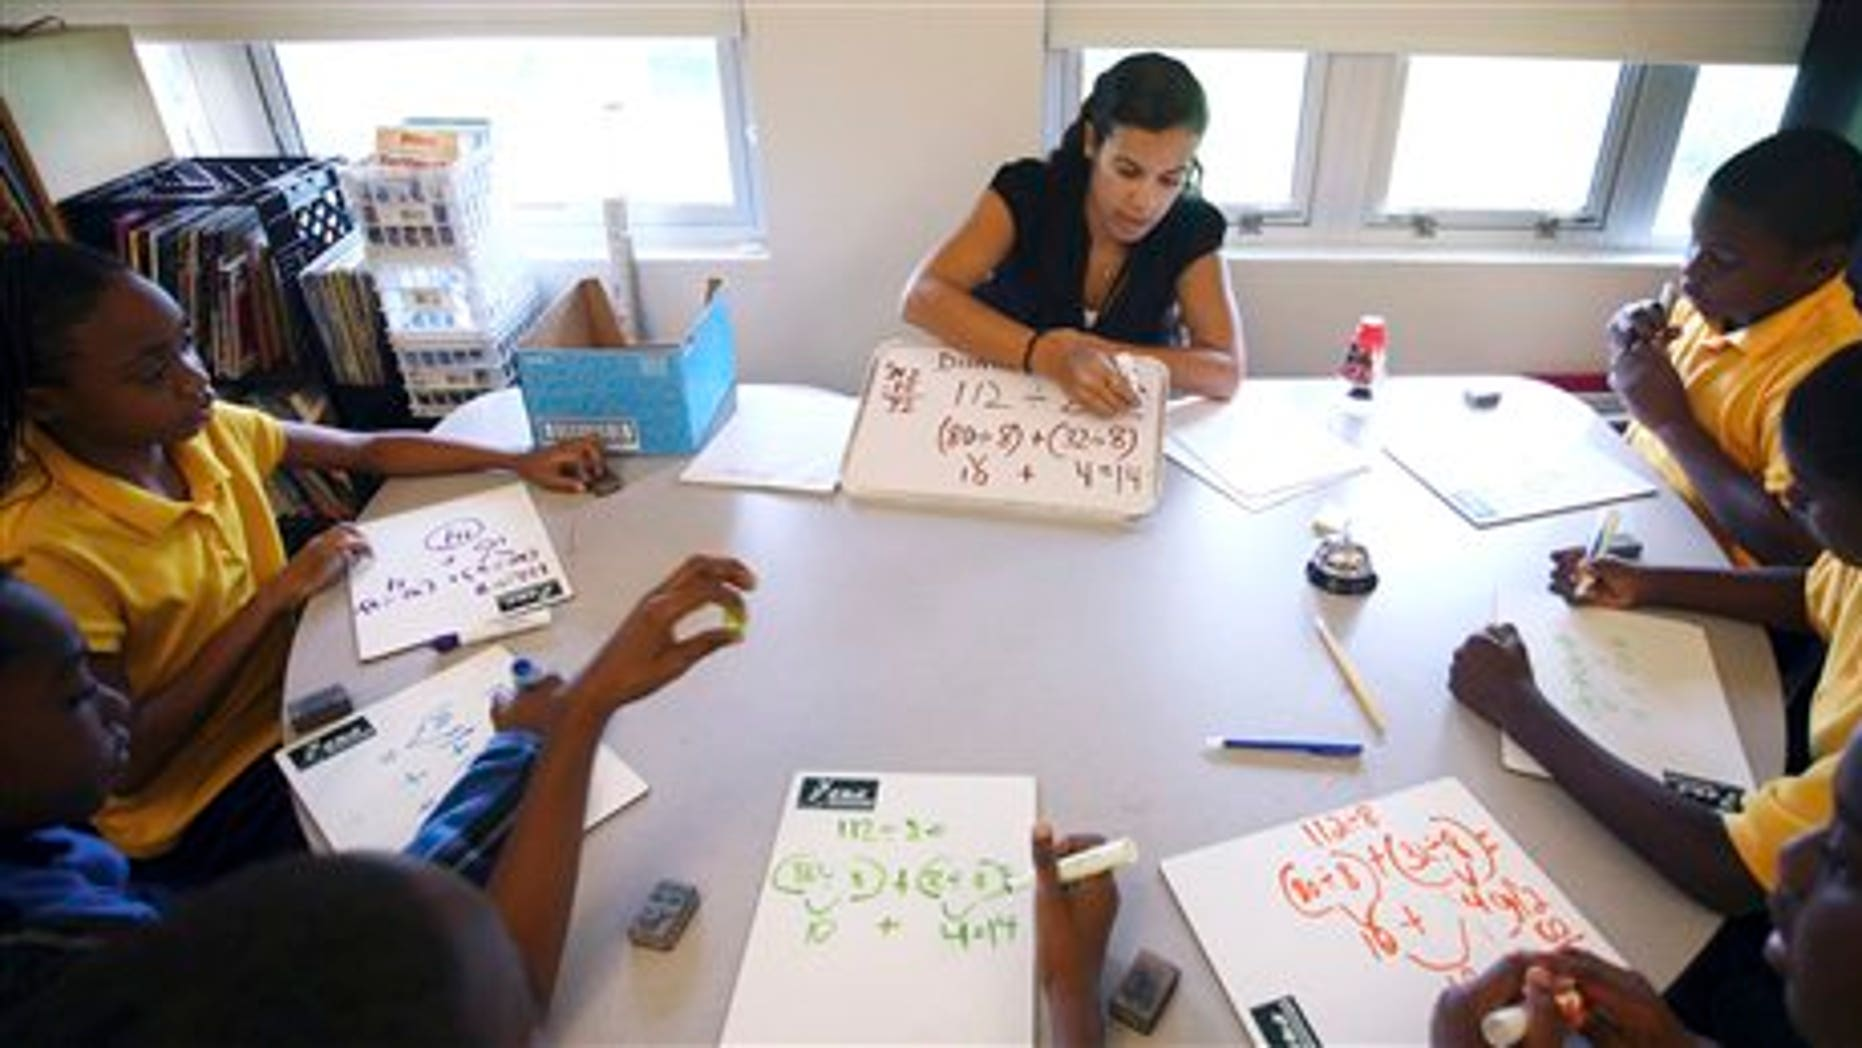 Sept. 1, 2011: Jennifer Mojica works with students in her math class at Holmes Elementary School in Miami.